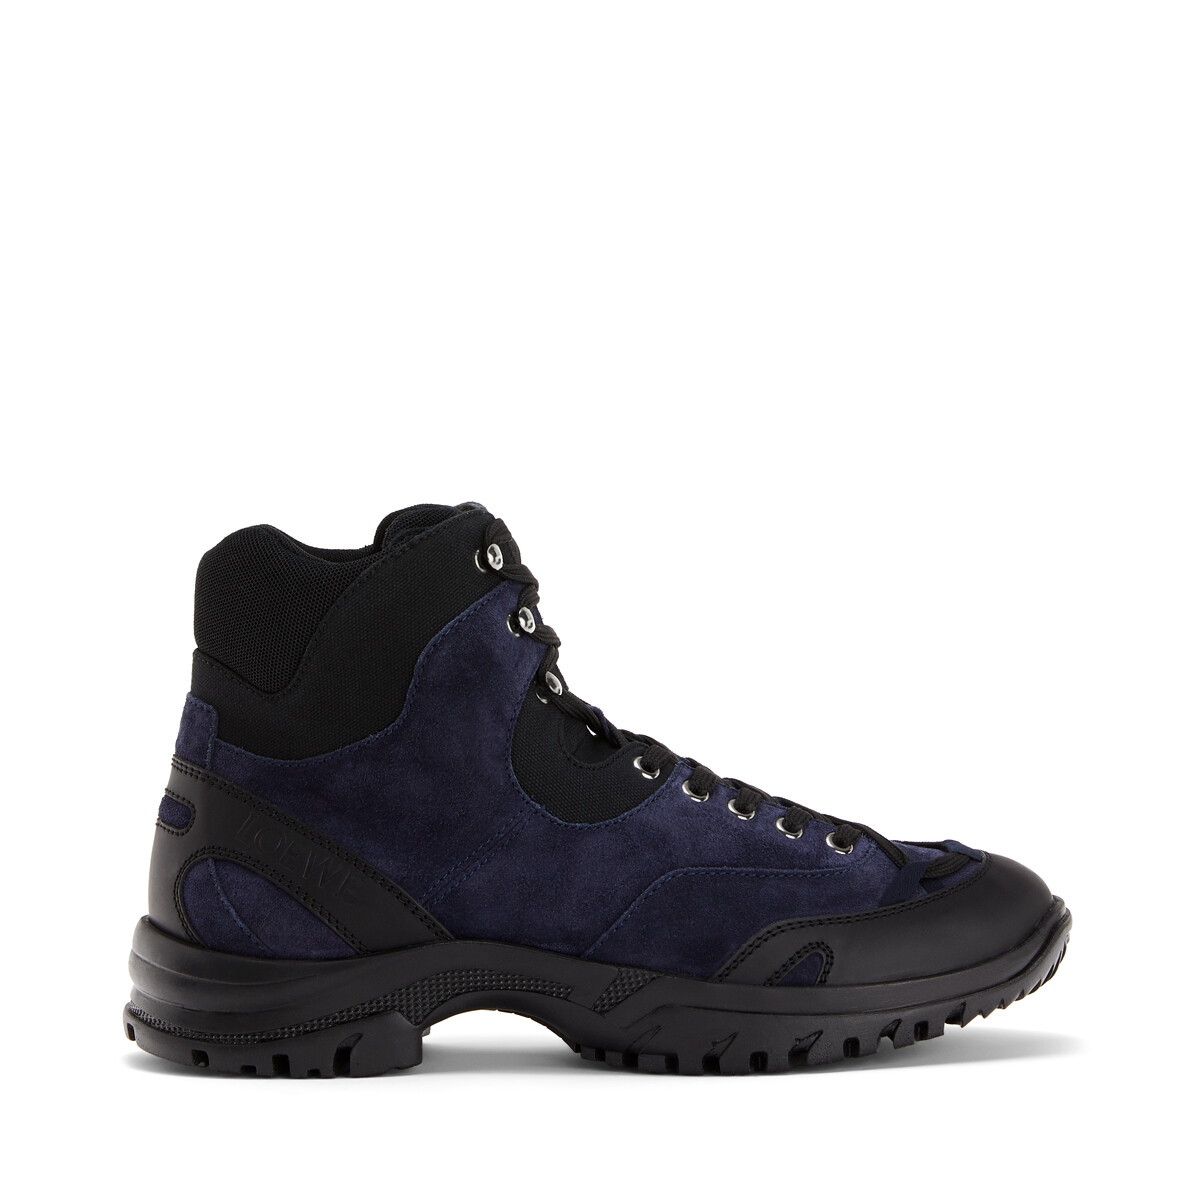 LOEWE Hiking Boot Eln Navy Blue/Black front